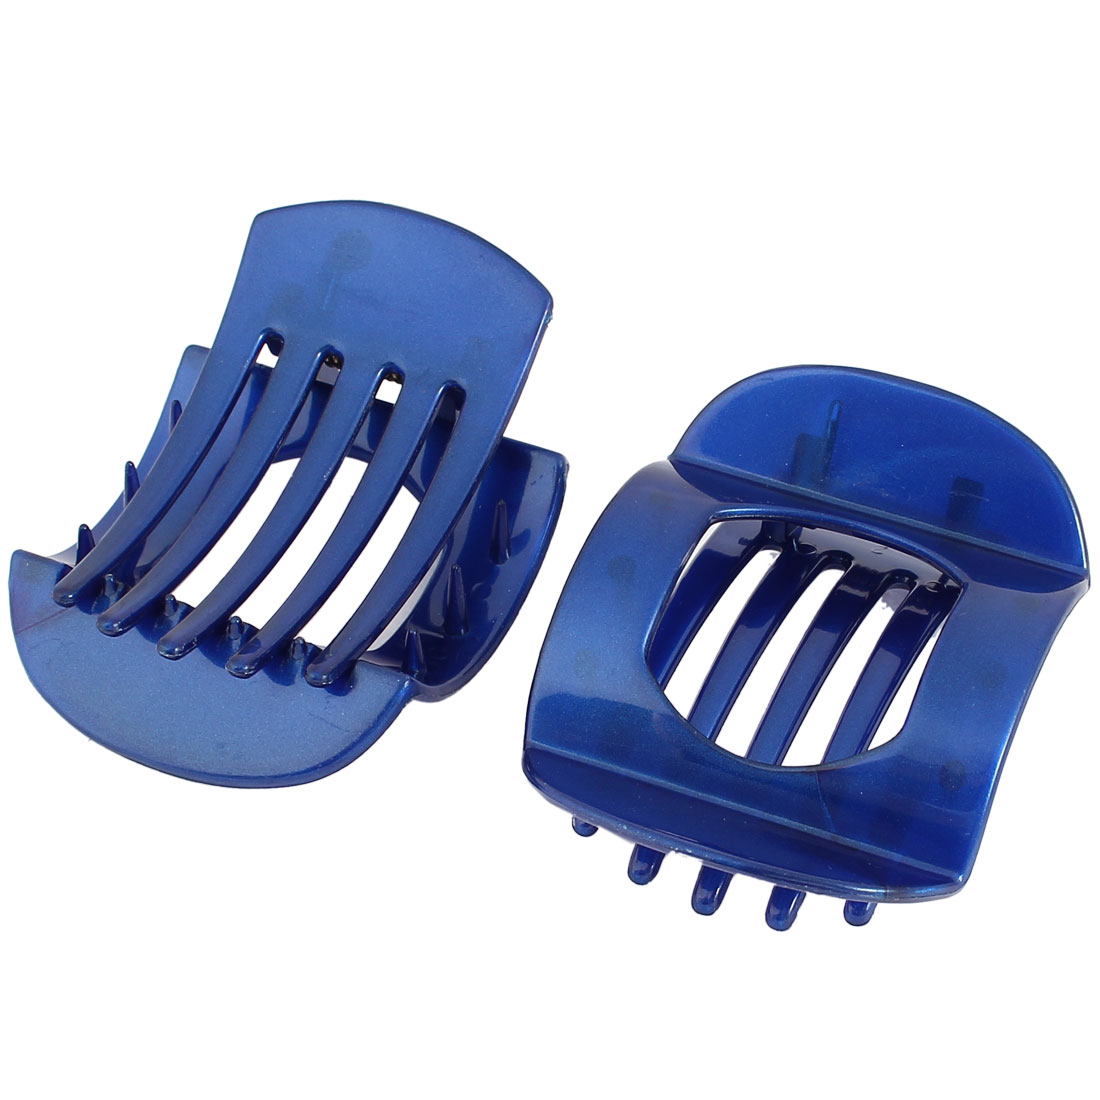 2Pcs Hairstyle Teeth Design Cut Out Middle Spring Loaded Hairclip Claw Clamp Dark Blue for Women